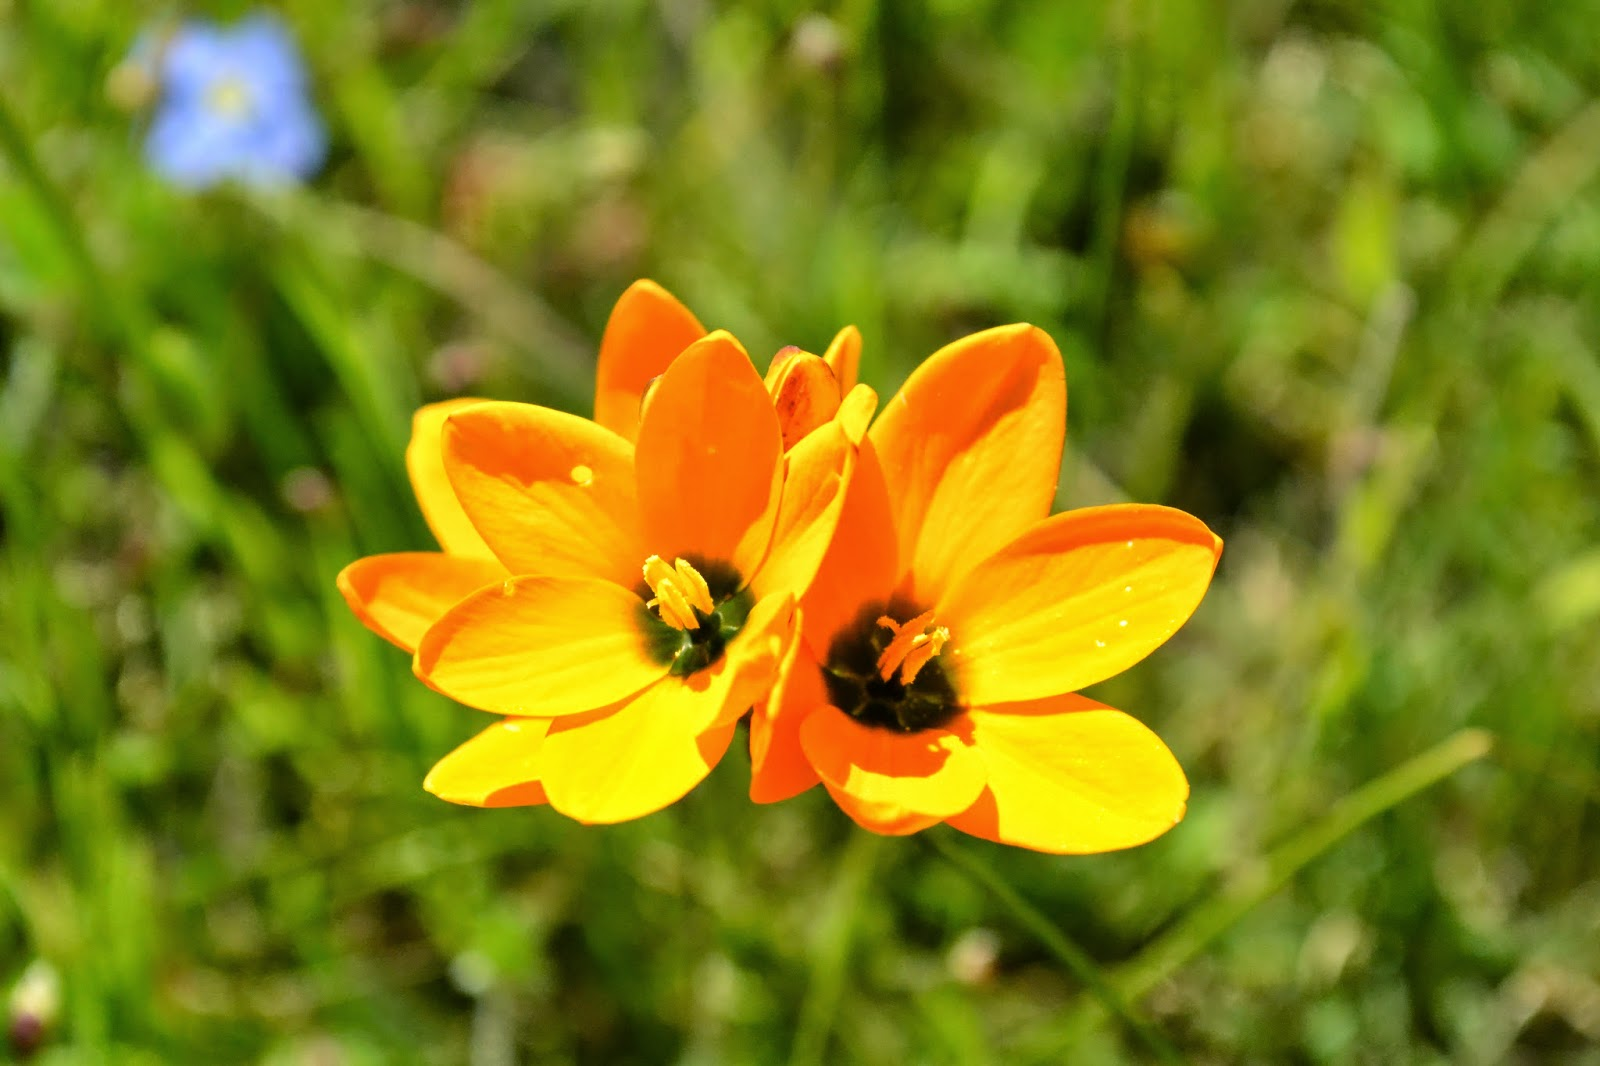 Orange yellow flowers